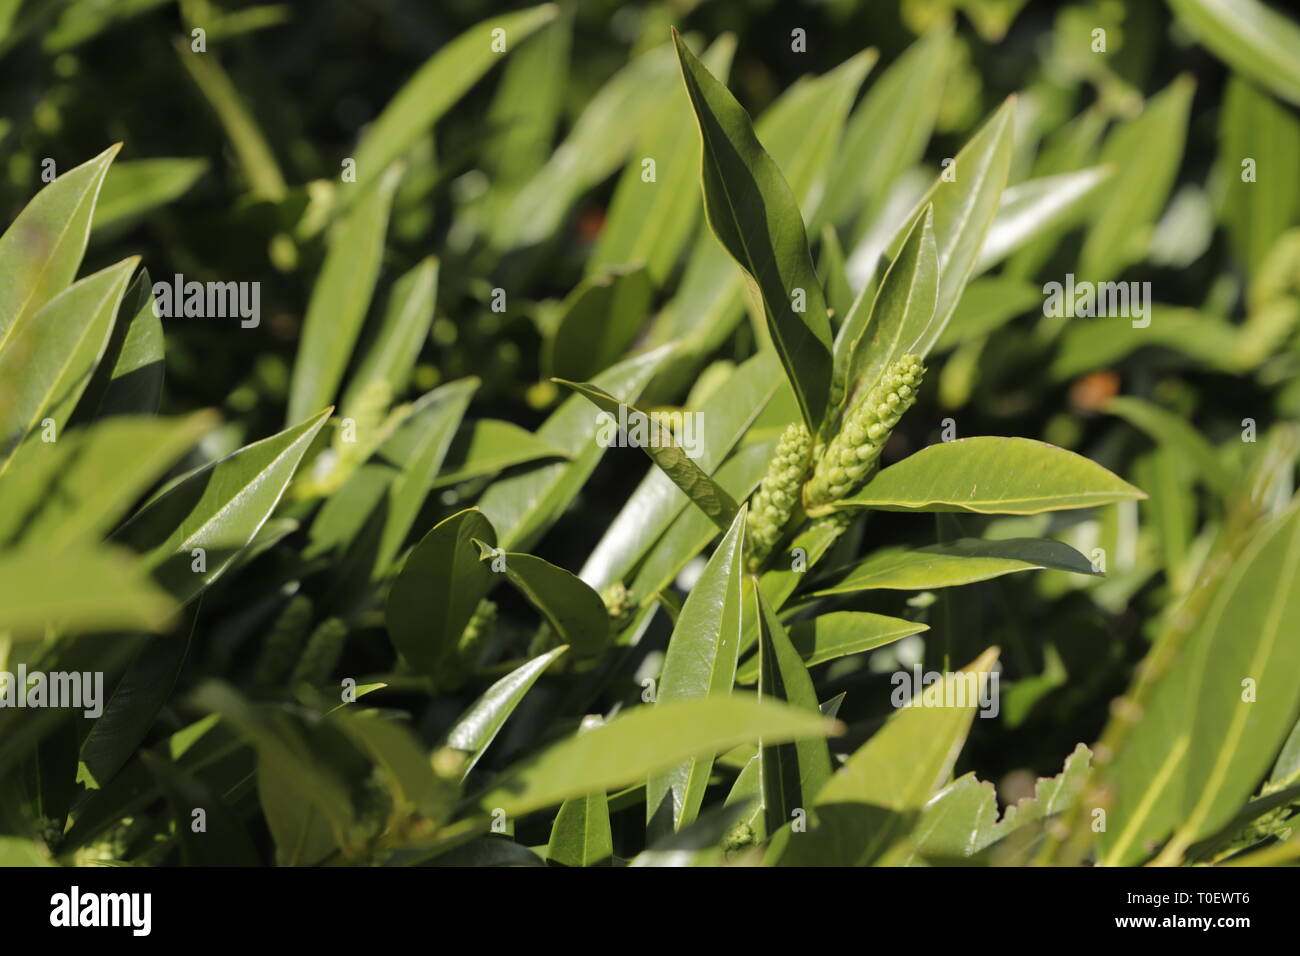 Prunus laurocerasus a winter green branch - Stock Image